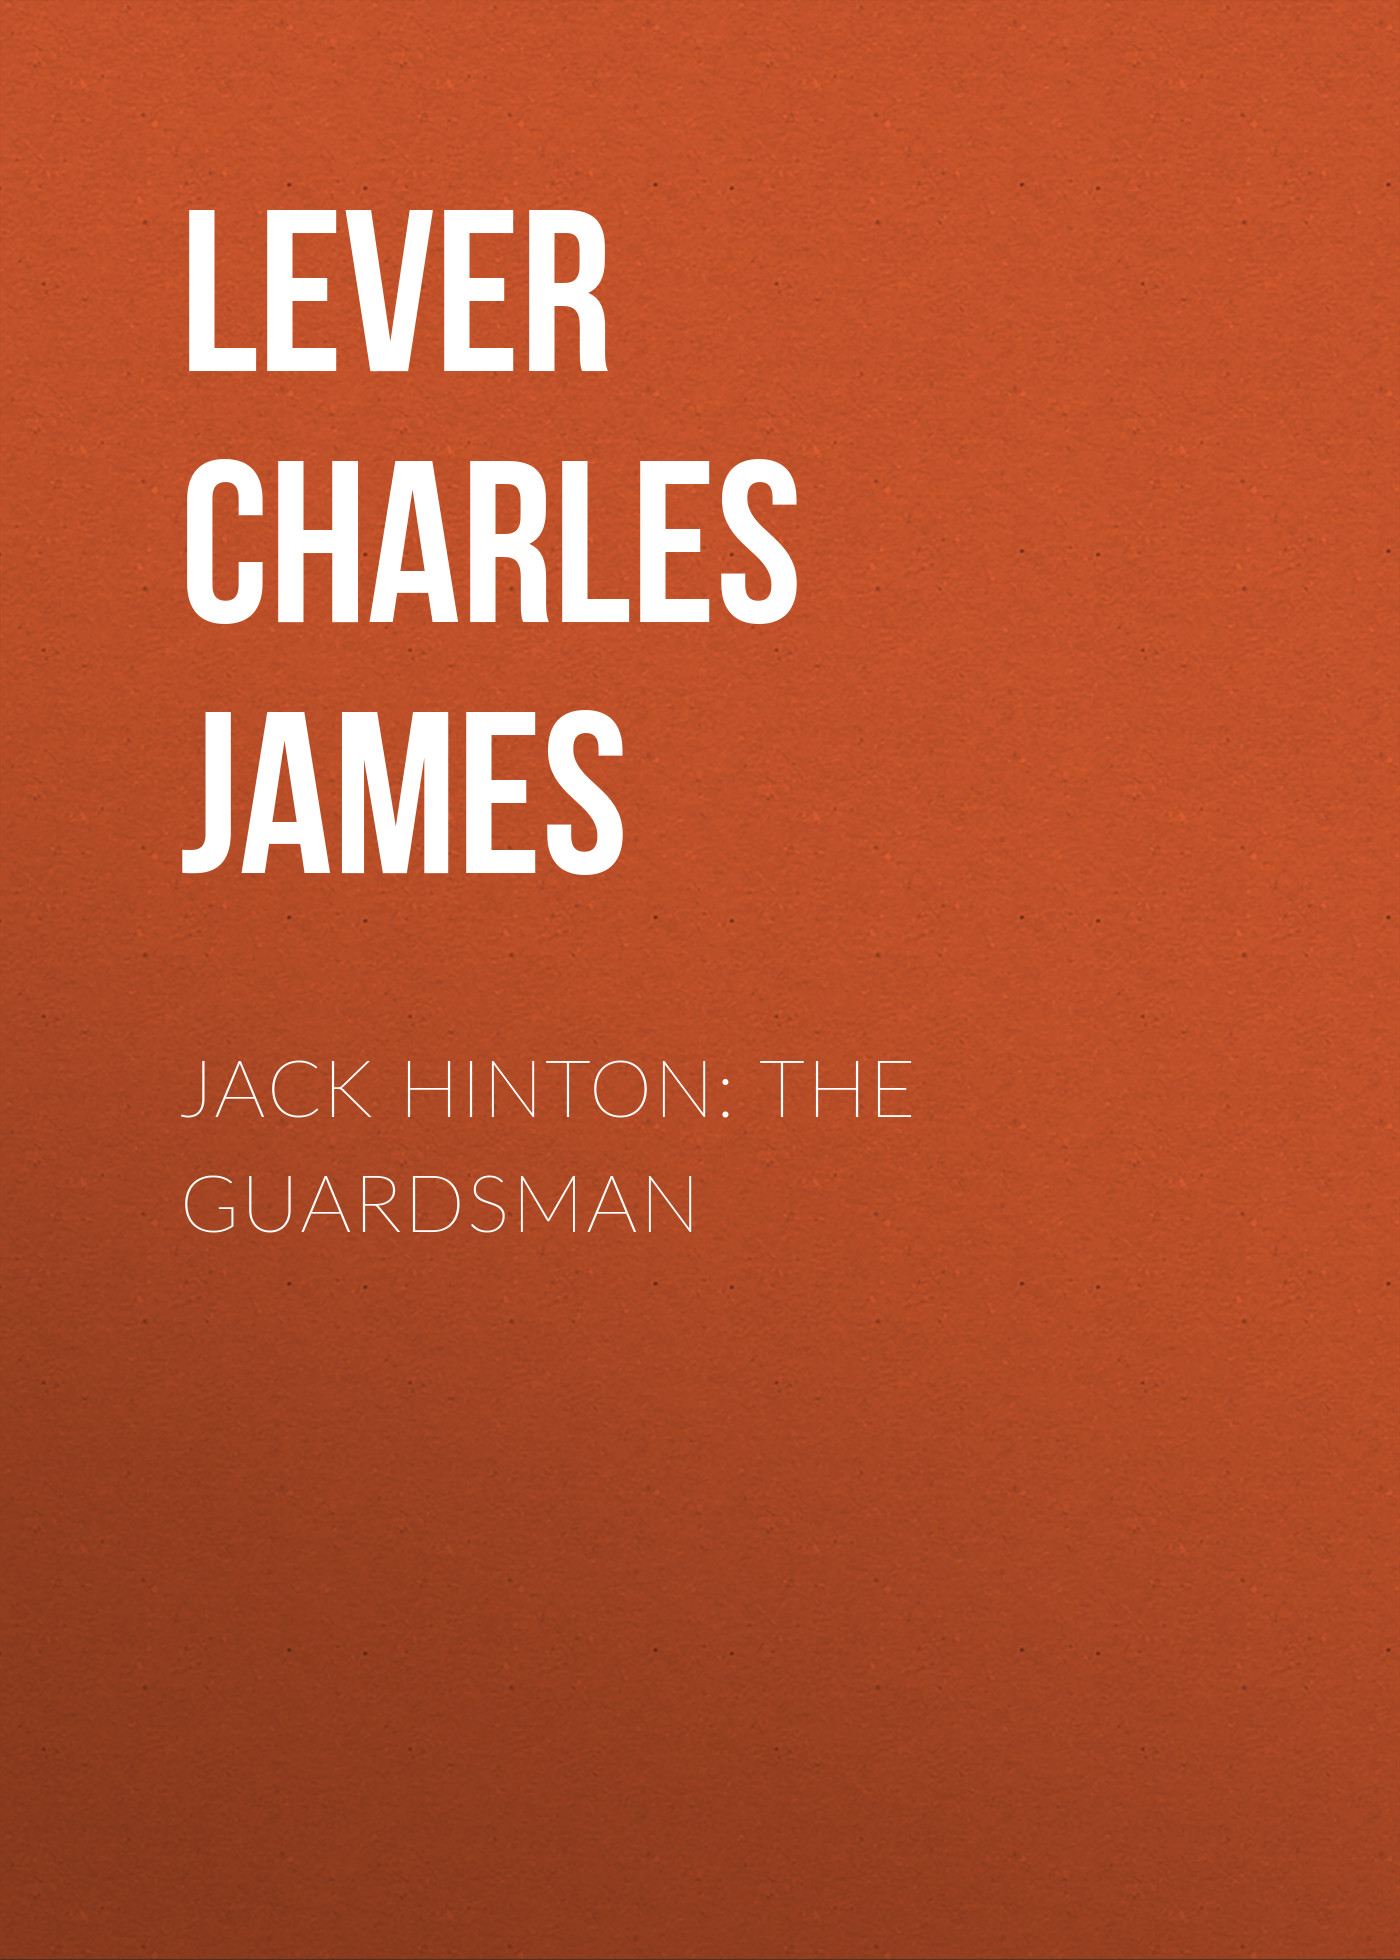 Lever Charles James Jack Hinton: The Guardsman a hinton rhapsody op 23